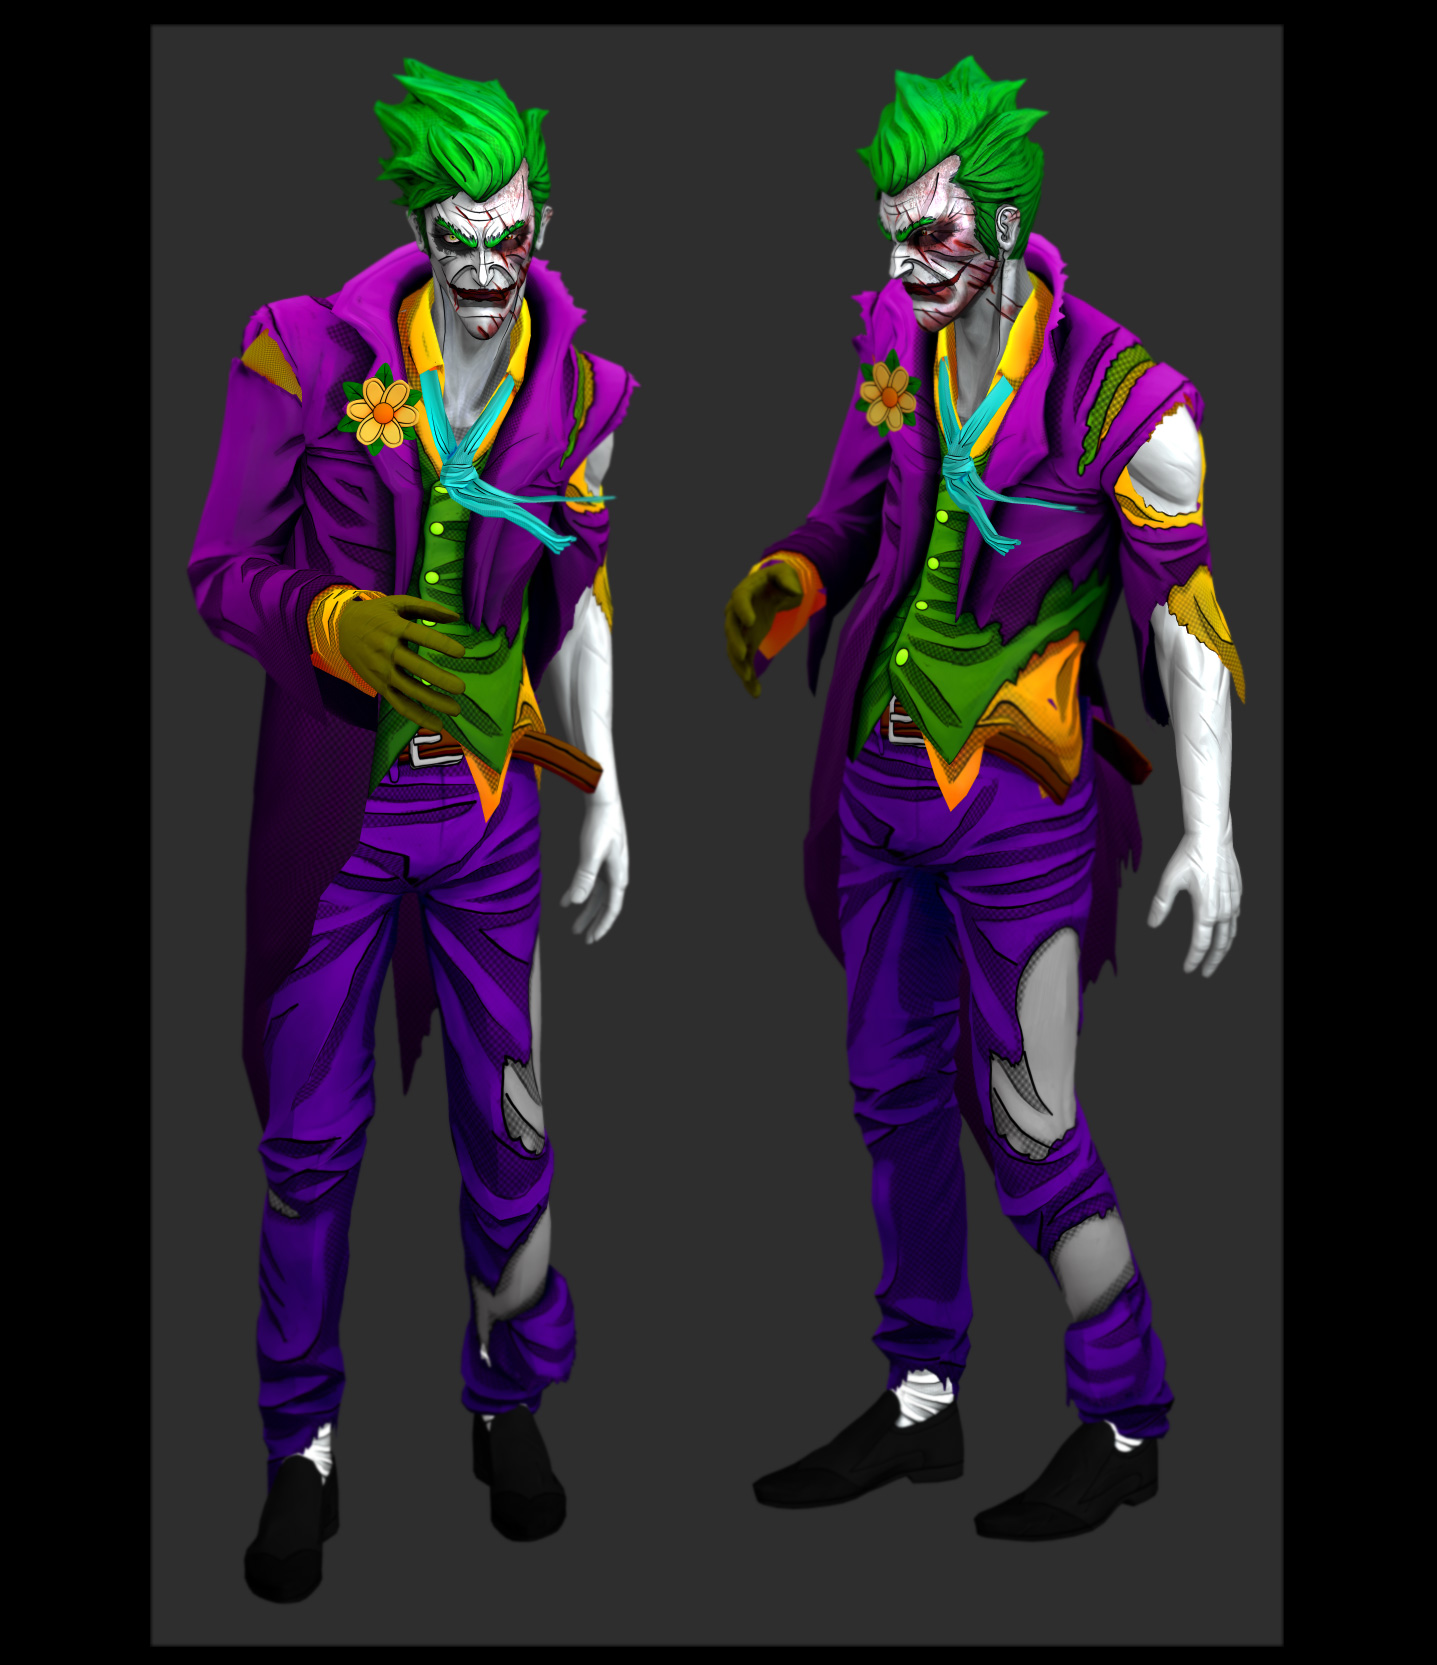 _wip_1__joker___final_stand_by_yuliuskrisna-d7bg6hd.jpg